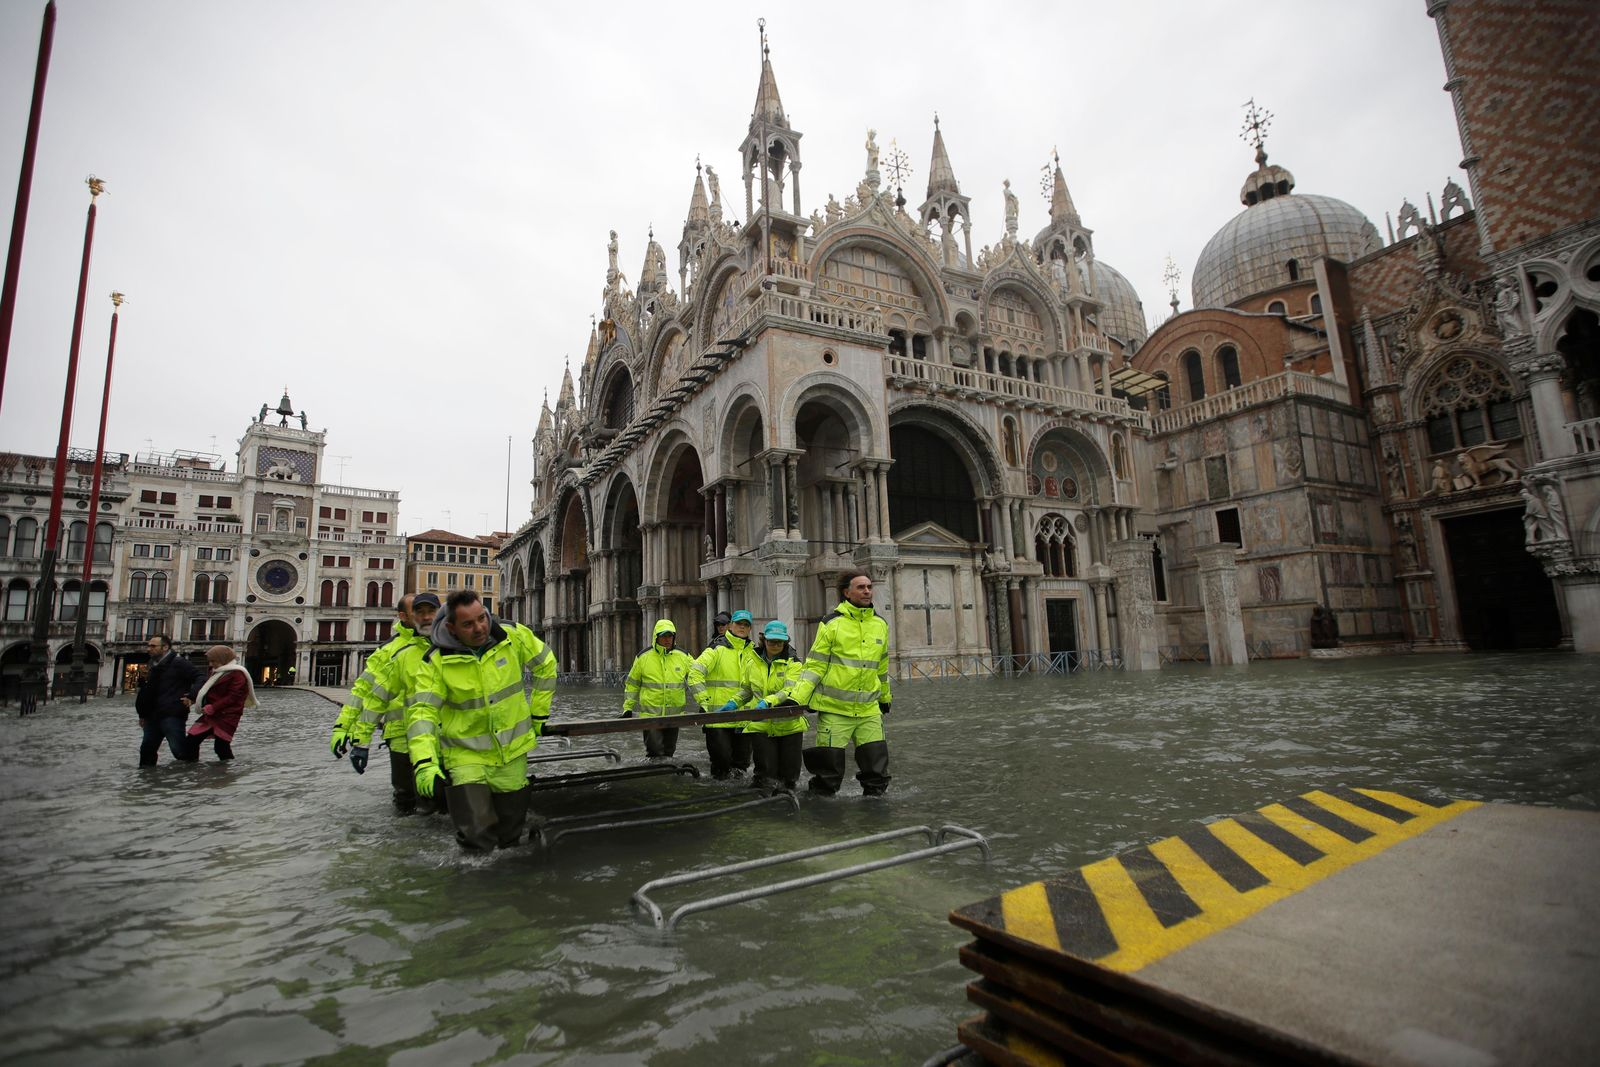 Municipality workers carry wooden boards to create a trestle bridge in a flooded St. Mark's Square at Venice, Friday, Nov. 15, 2019. (AP Photo/Luca Bruno)